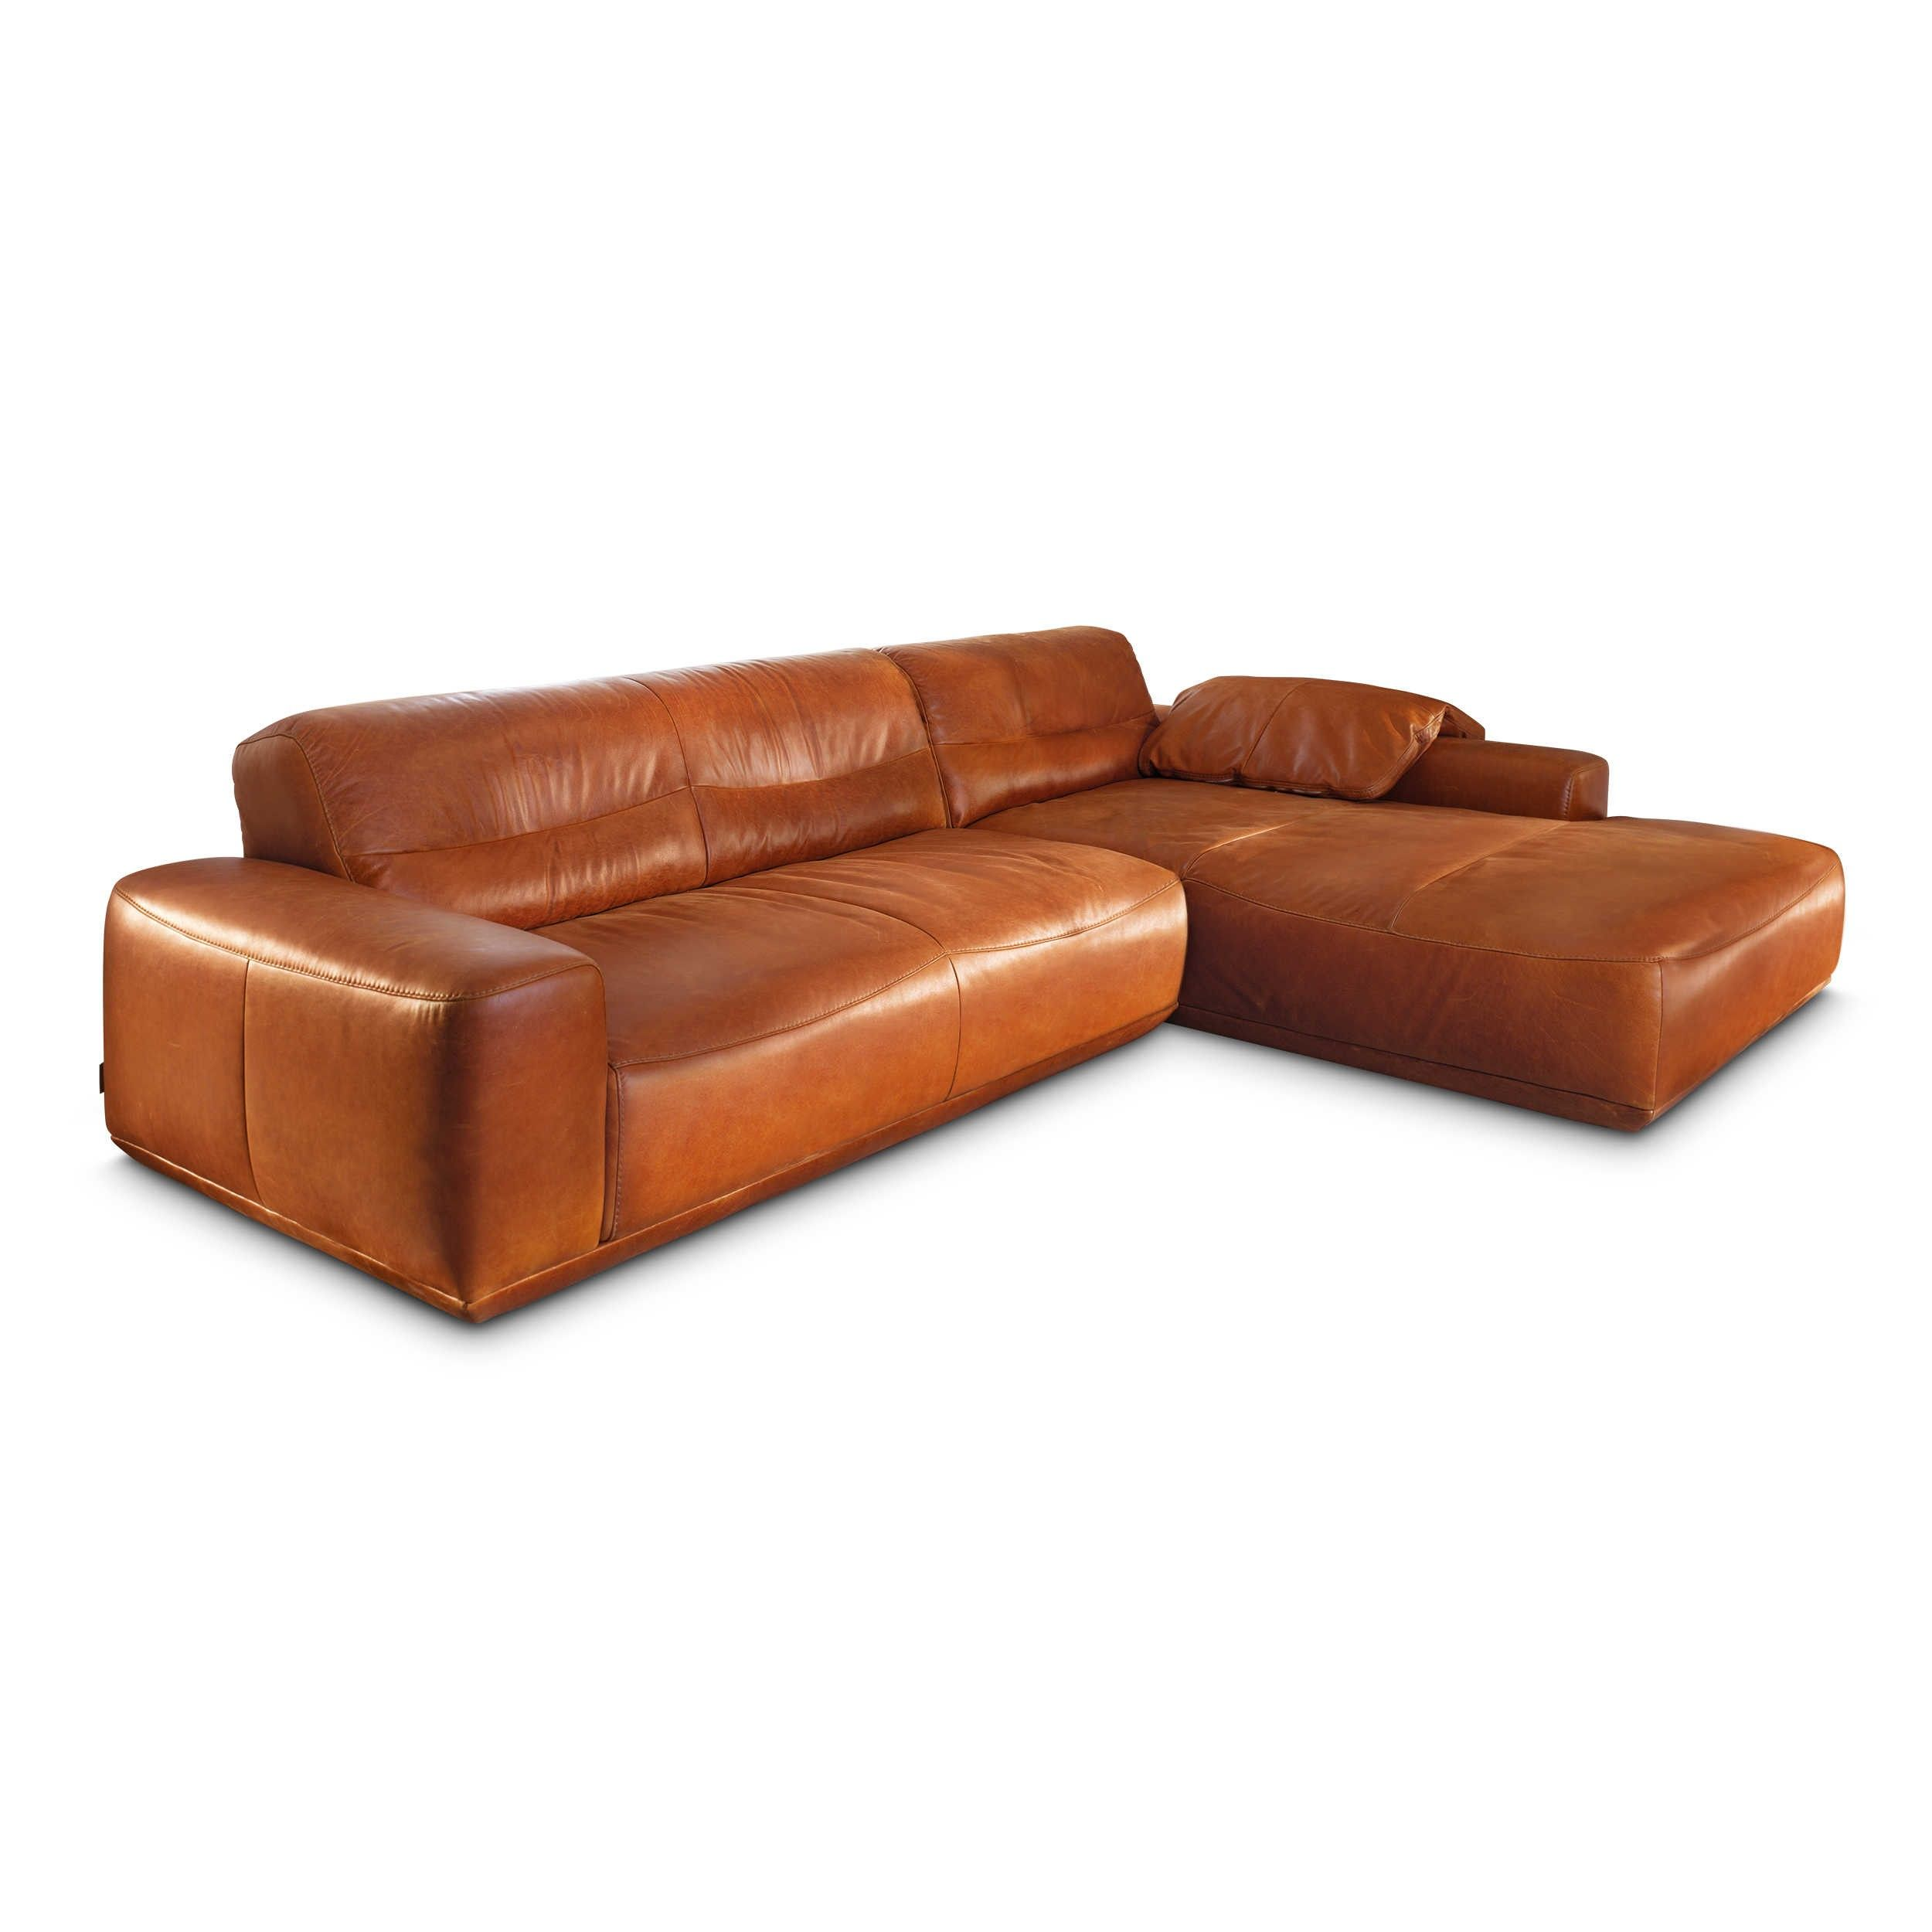 Big Sofa Ecksofa Willi Schillig Ecksofa 20560 William Braun Leder Online Kaufen Bei Woonio | Couch Design, Sofa, Couch